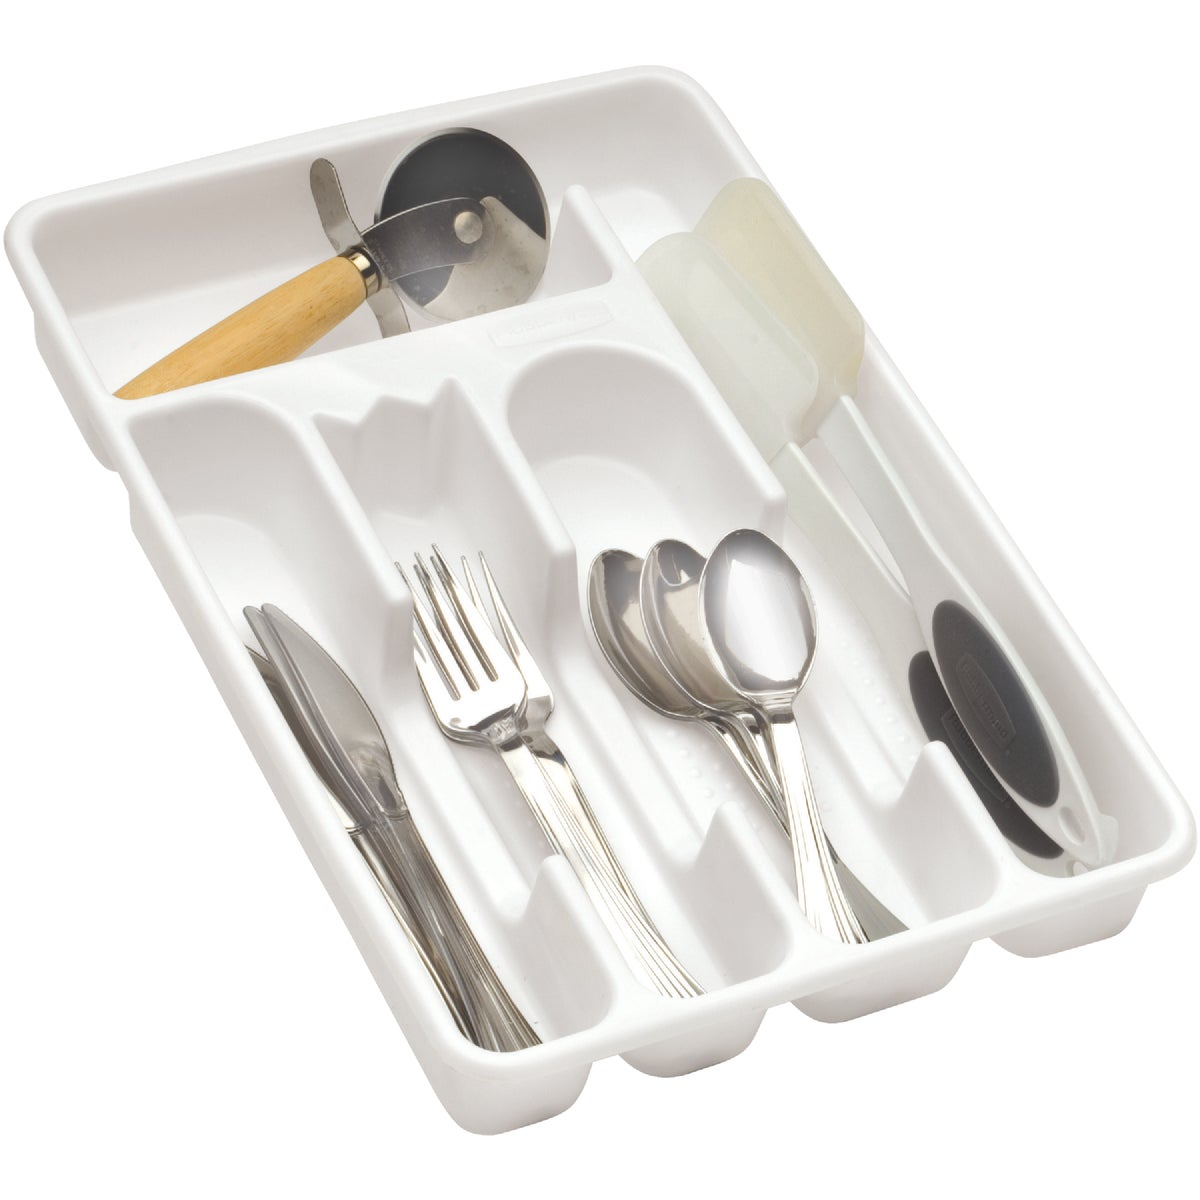 WHITE CUTLERY TRAY - 2919-RD-WHT by Rubbermaid Home